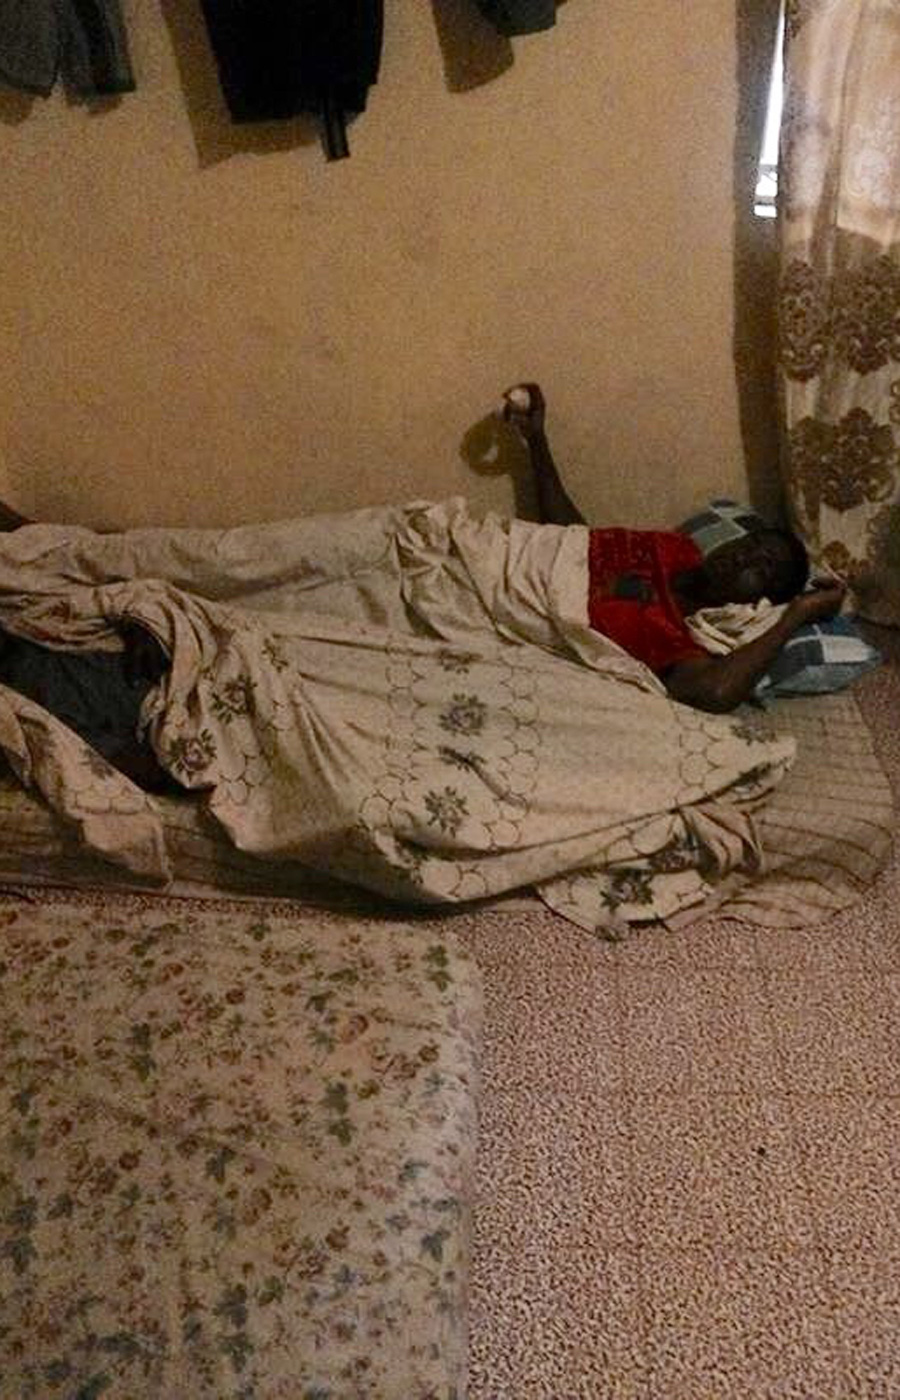 Sa'ad Hussein in Nairobi earlier in 2016, when his home was a mattress on the floor.